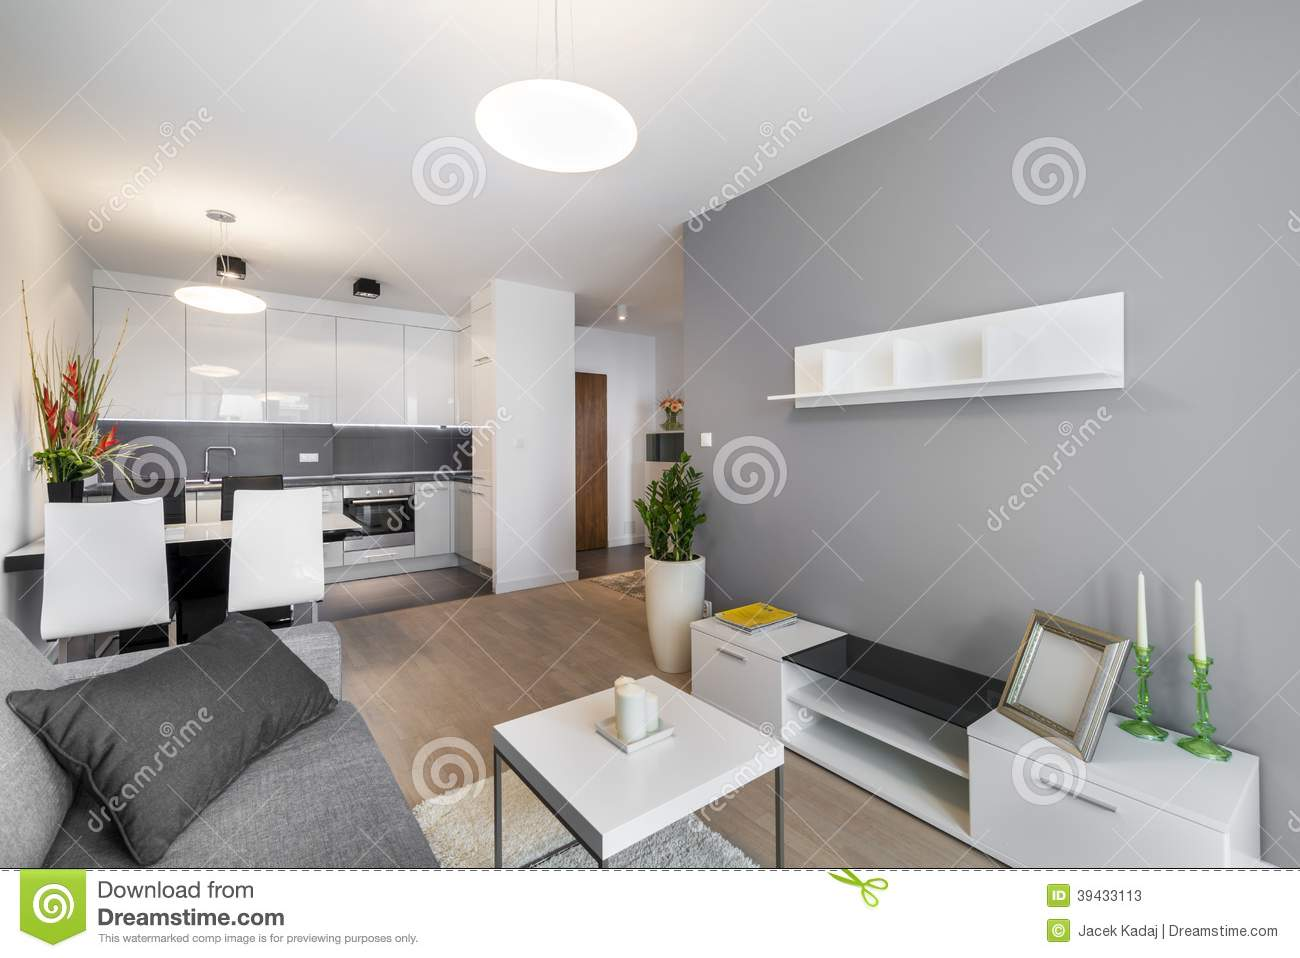 Modern interior design living room stock photo image for Contemporary kitchen family room ideas